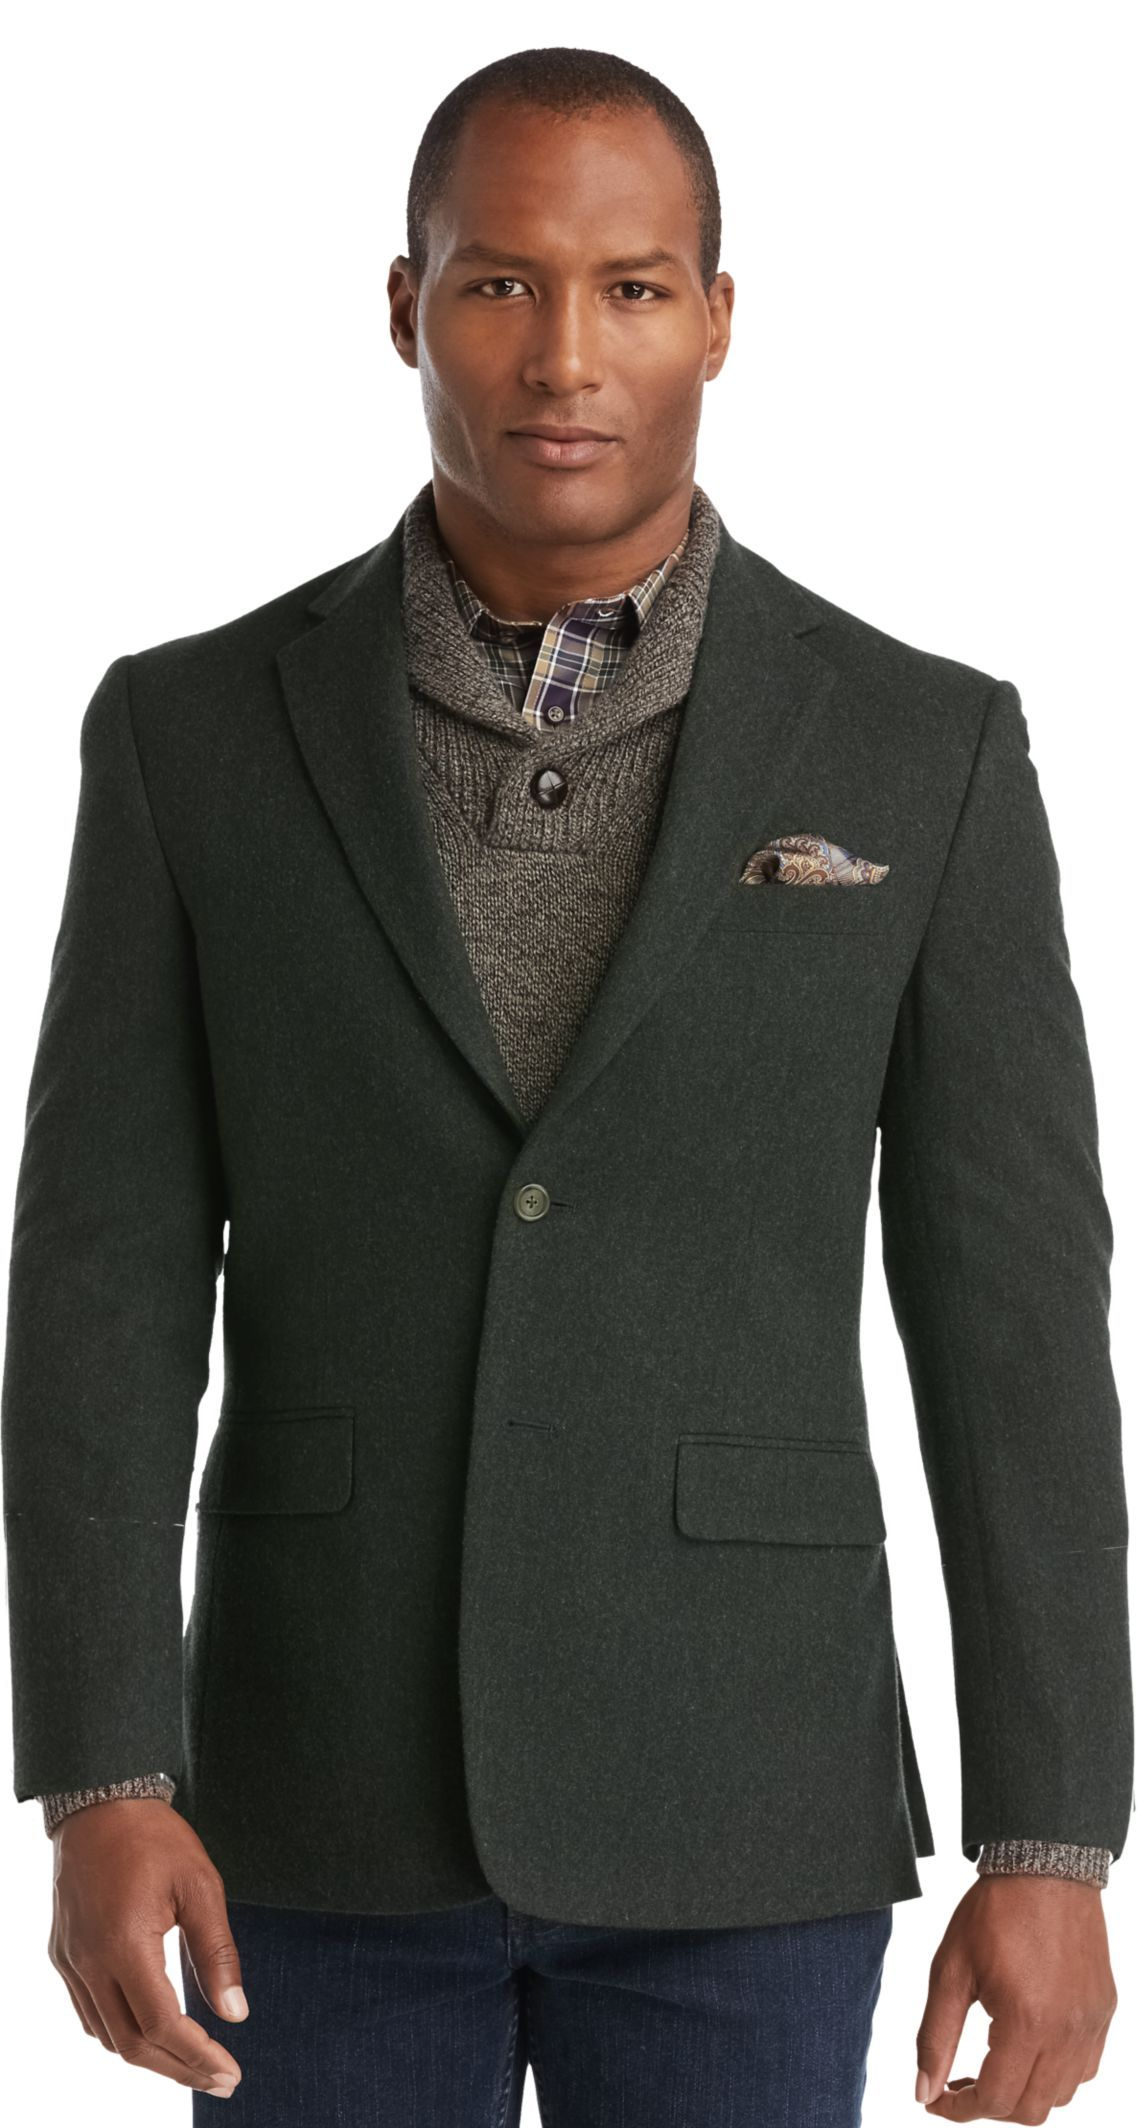 7a0cb4199 Executive Collection Traditional Fit Sportcoat - Big & Tall CLEARANCE